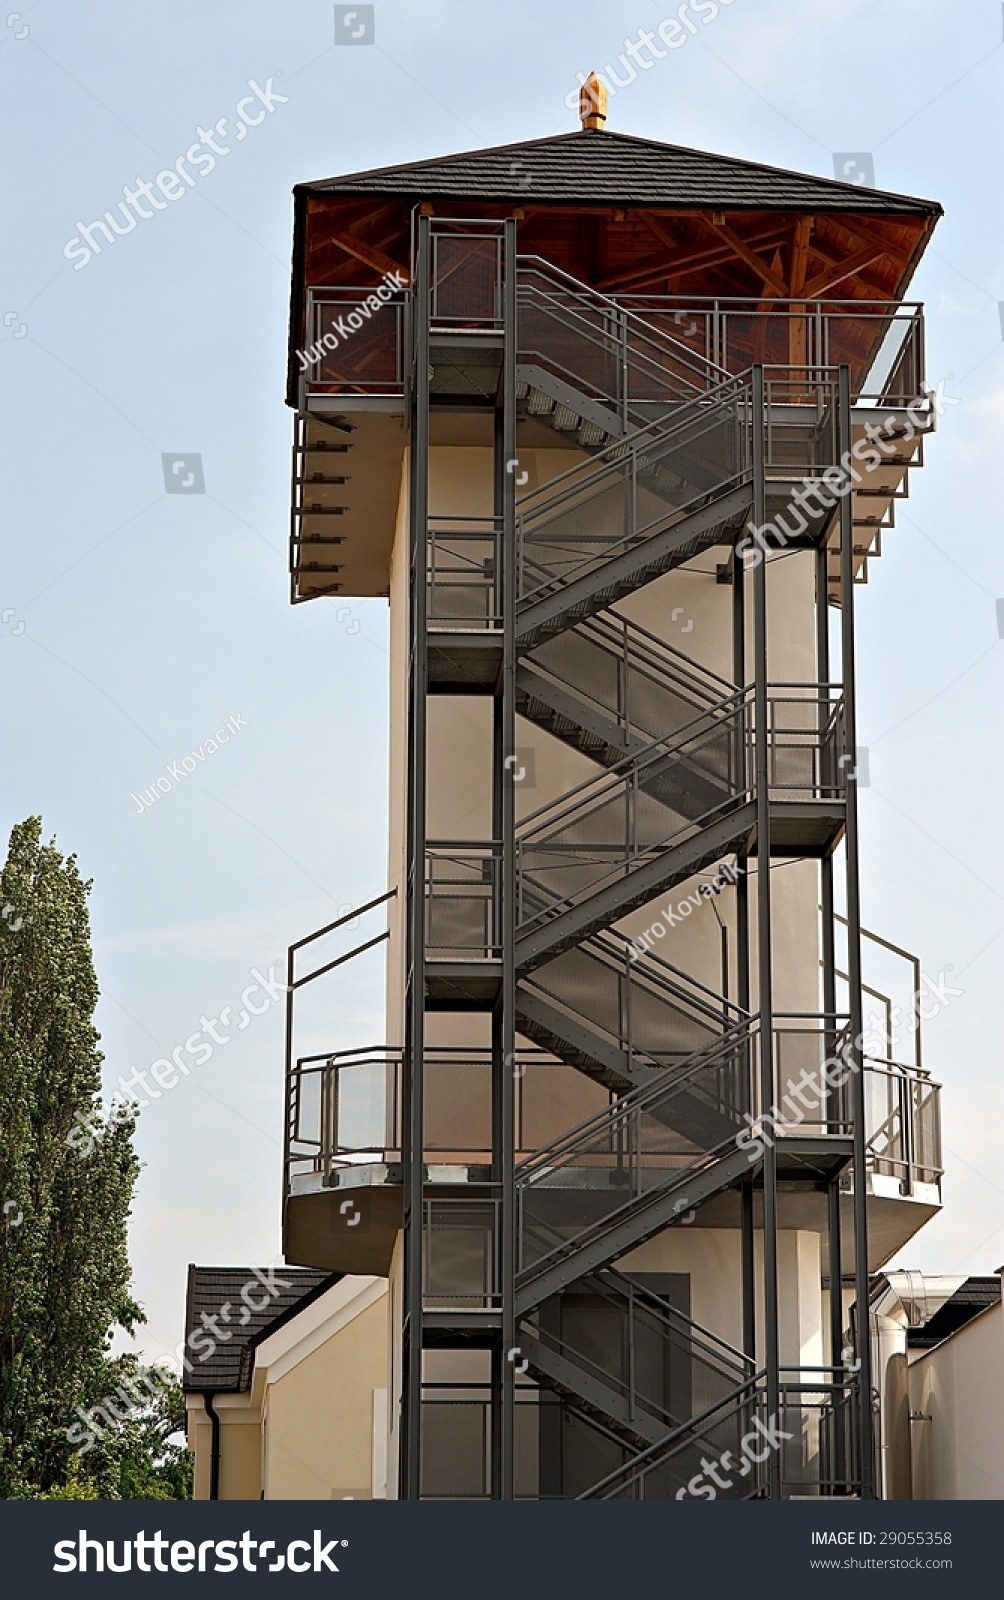 Tower With Metal Outside Staircases And Wooden Roof